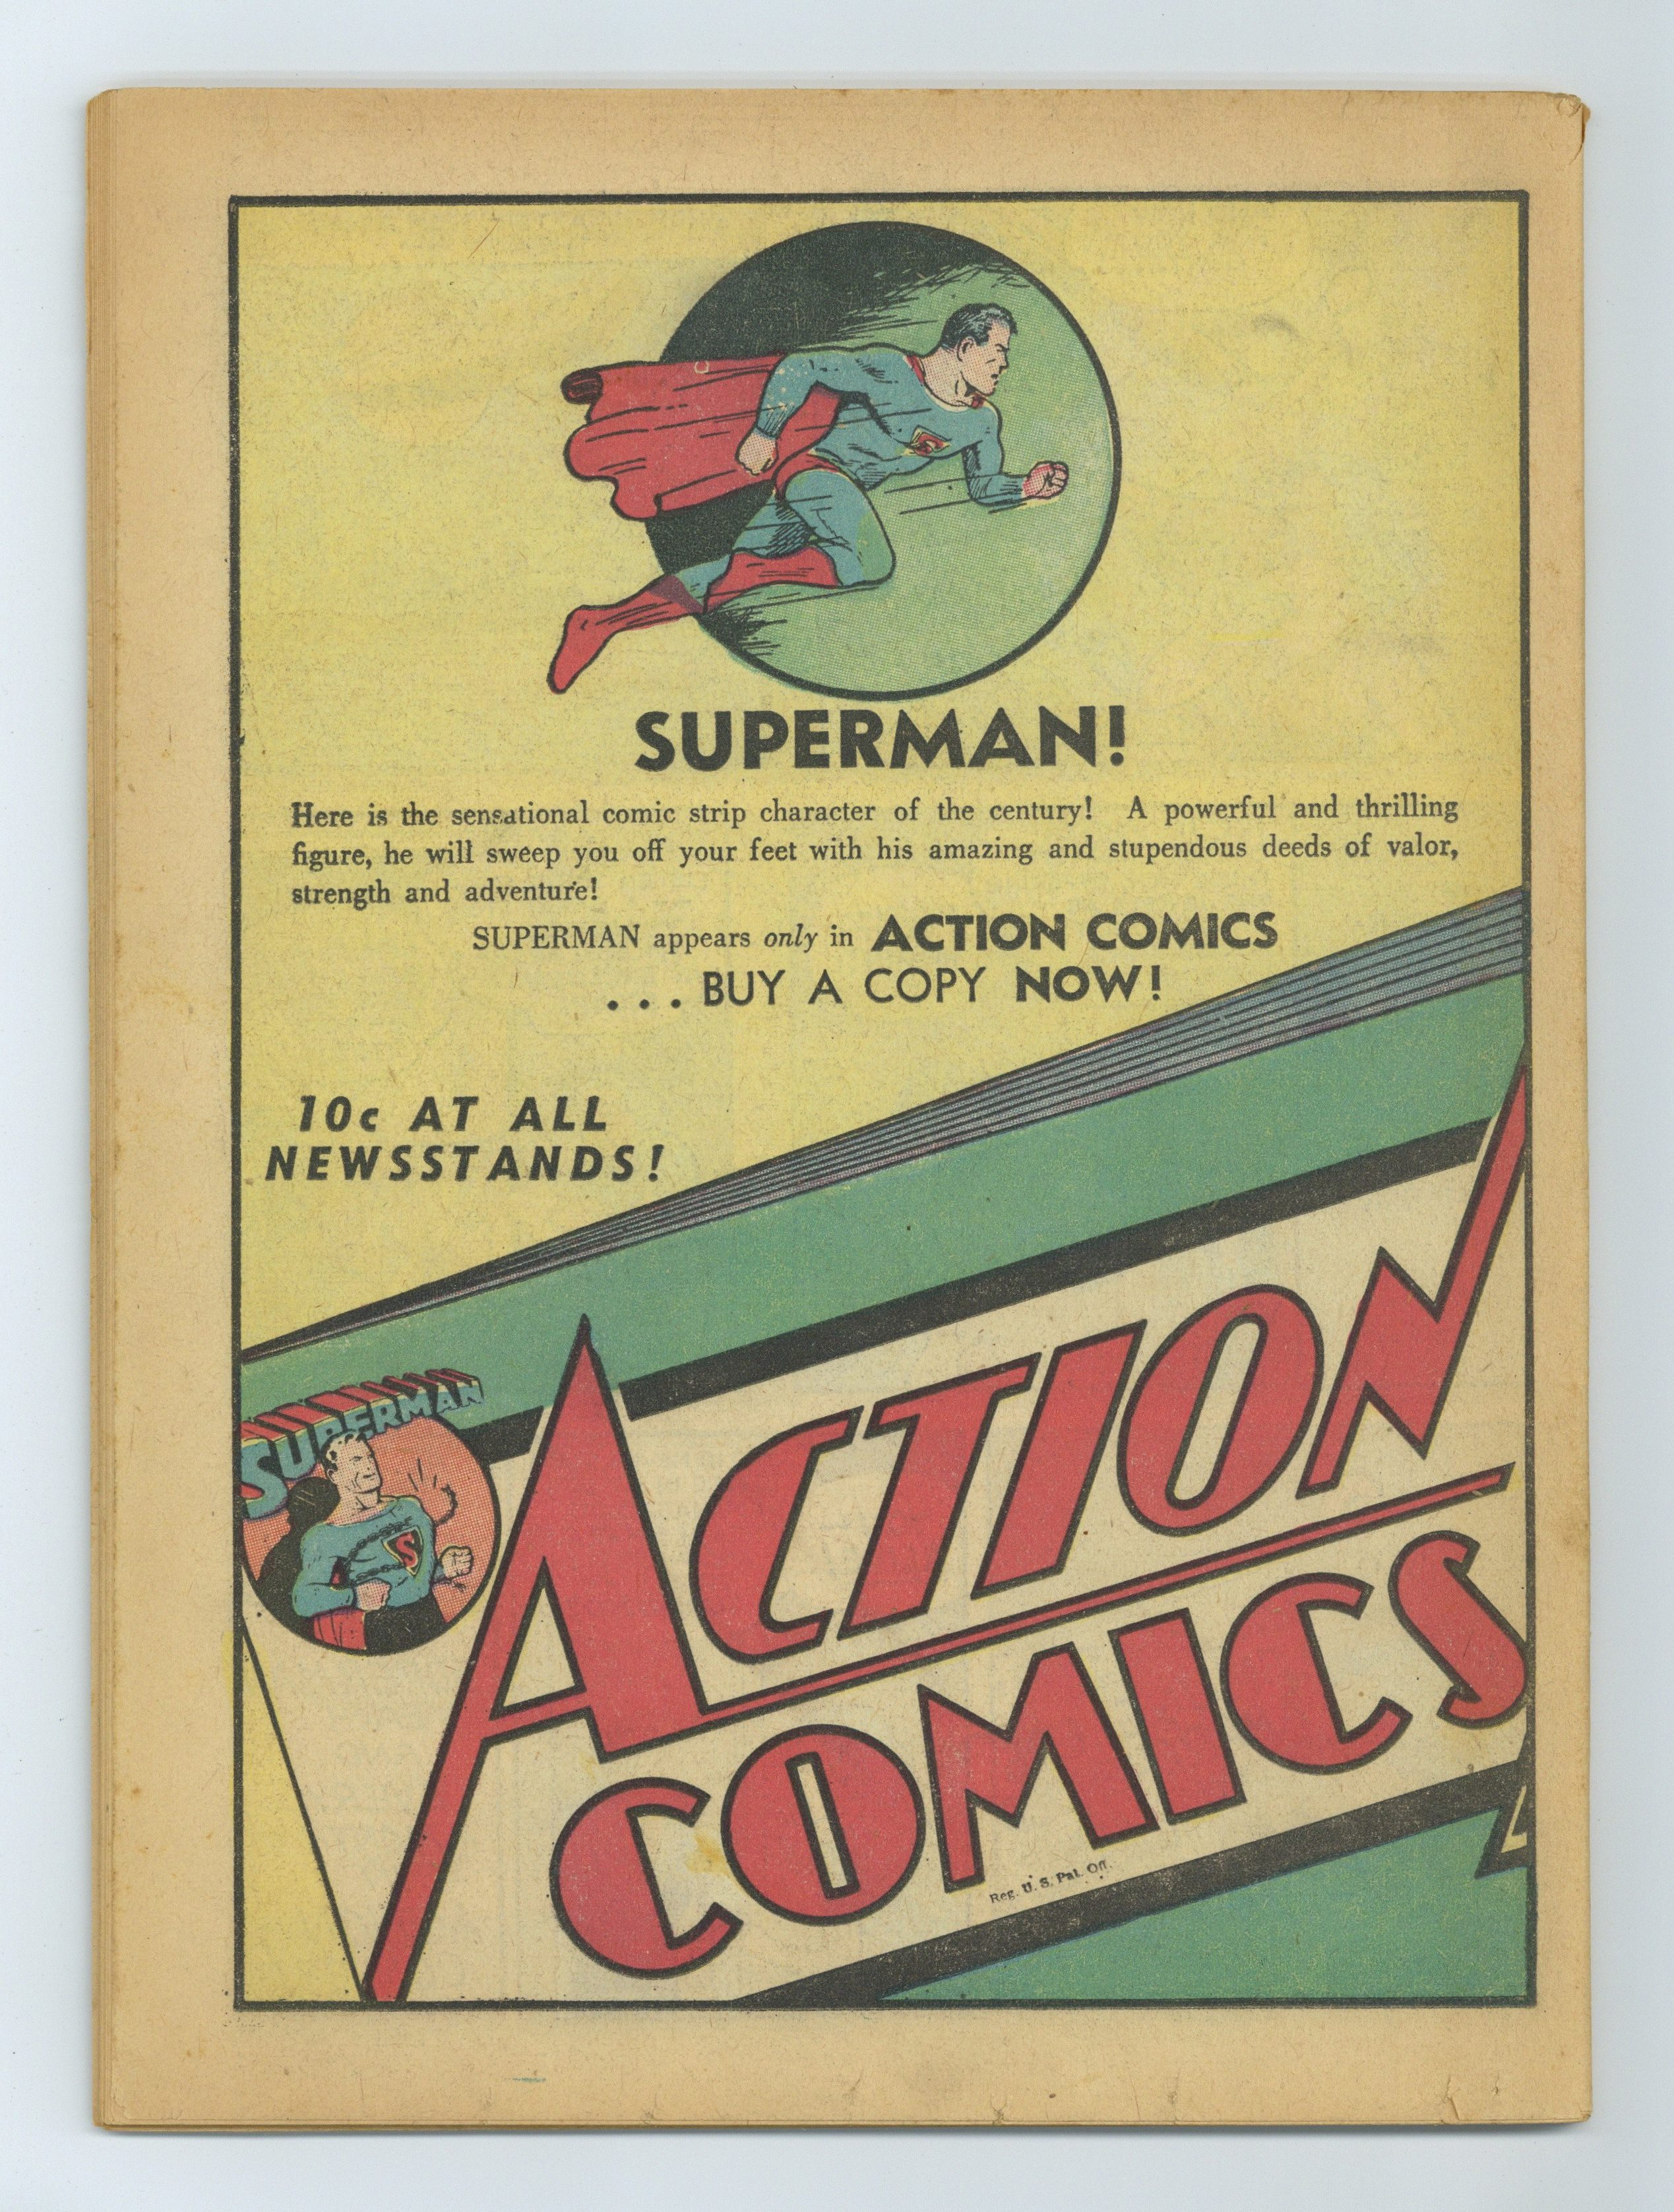 Daily Planet for Superman Clark Kent Lois Lane and friends 1//6 Scale Newspaper